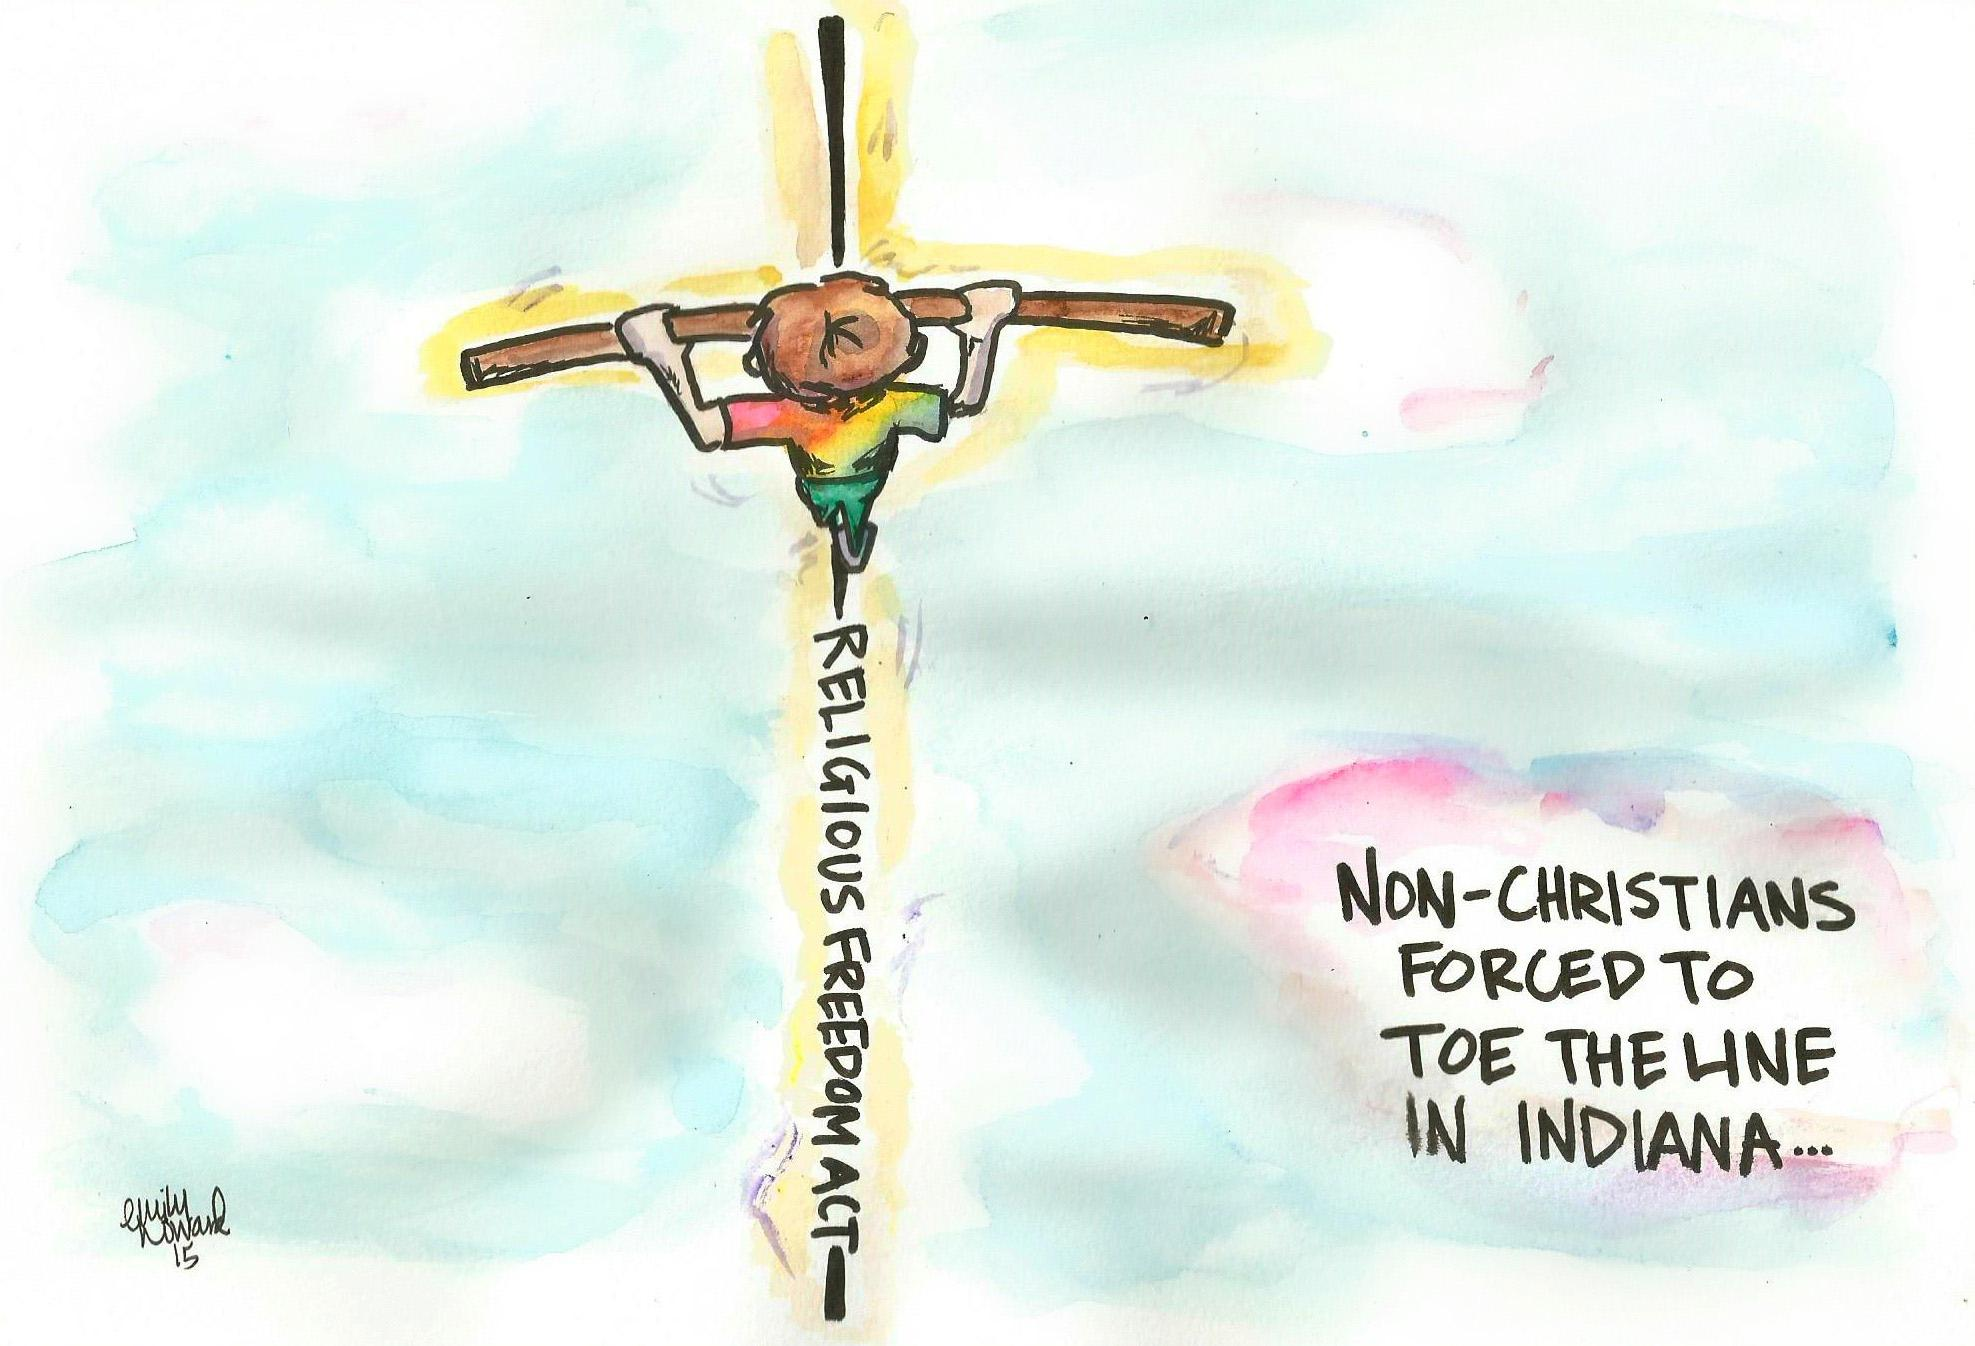 CARTOON: Religious Right appeals to hatred, prejudice